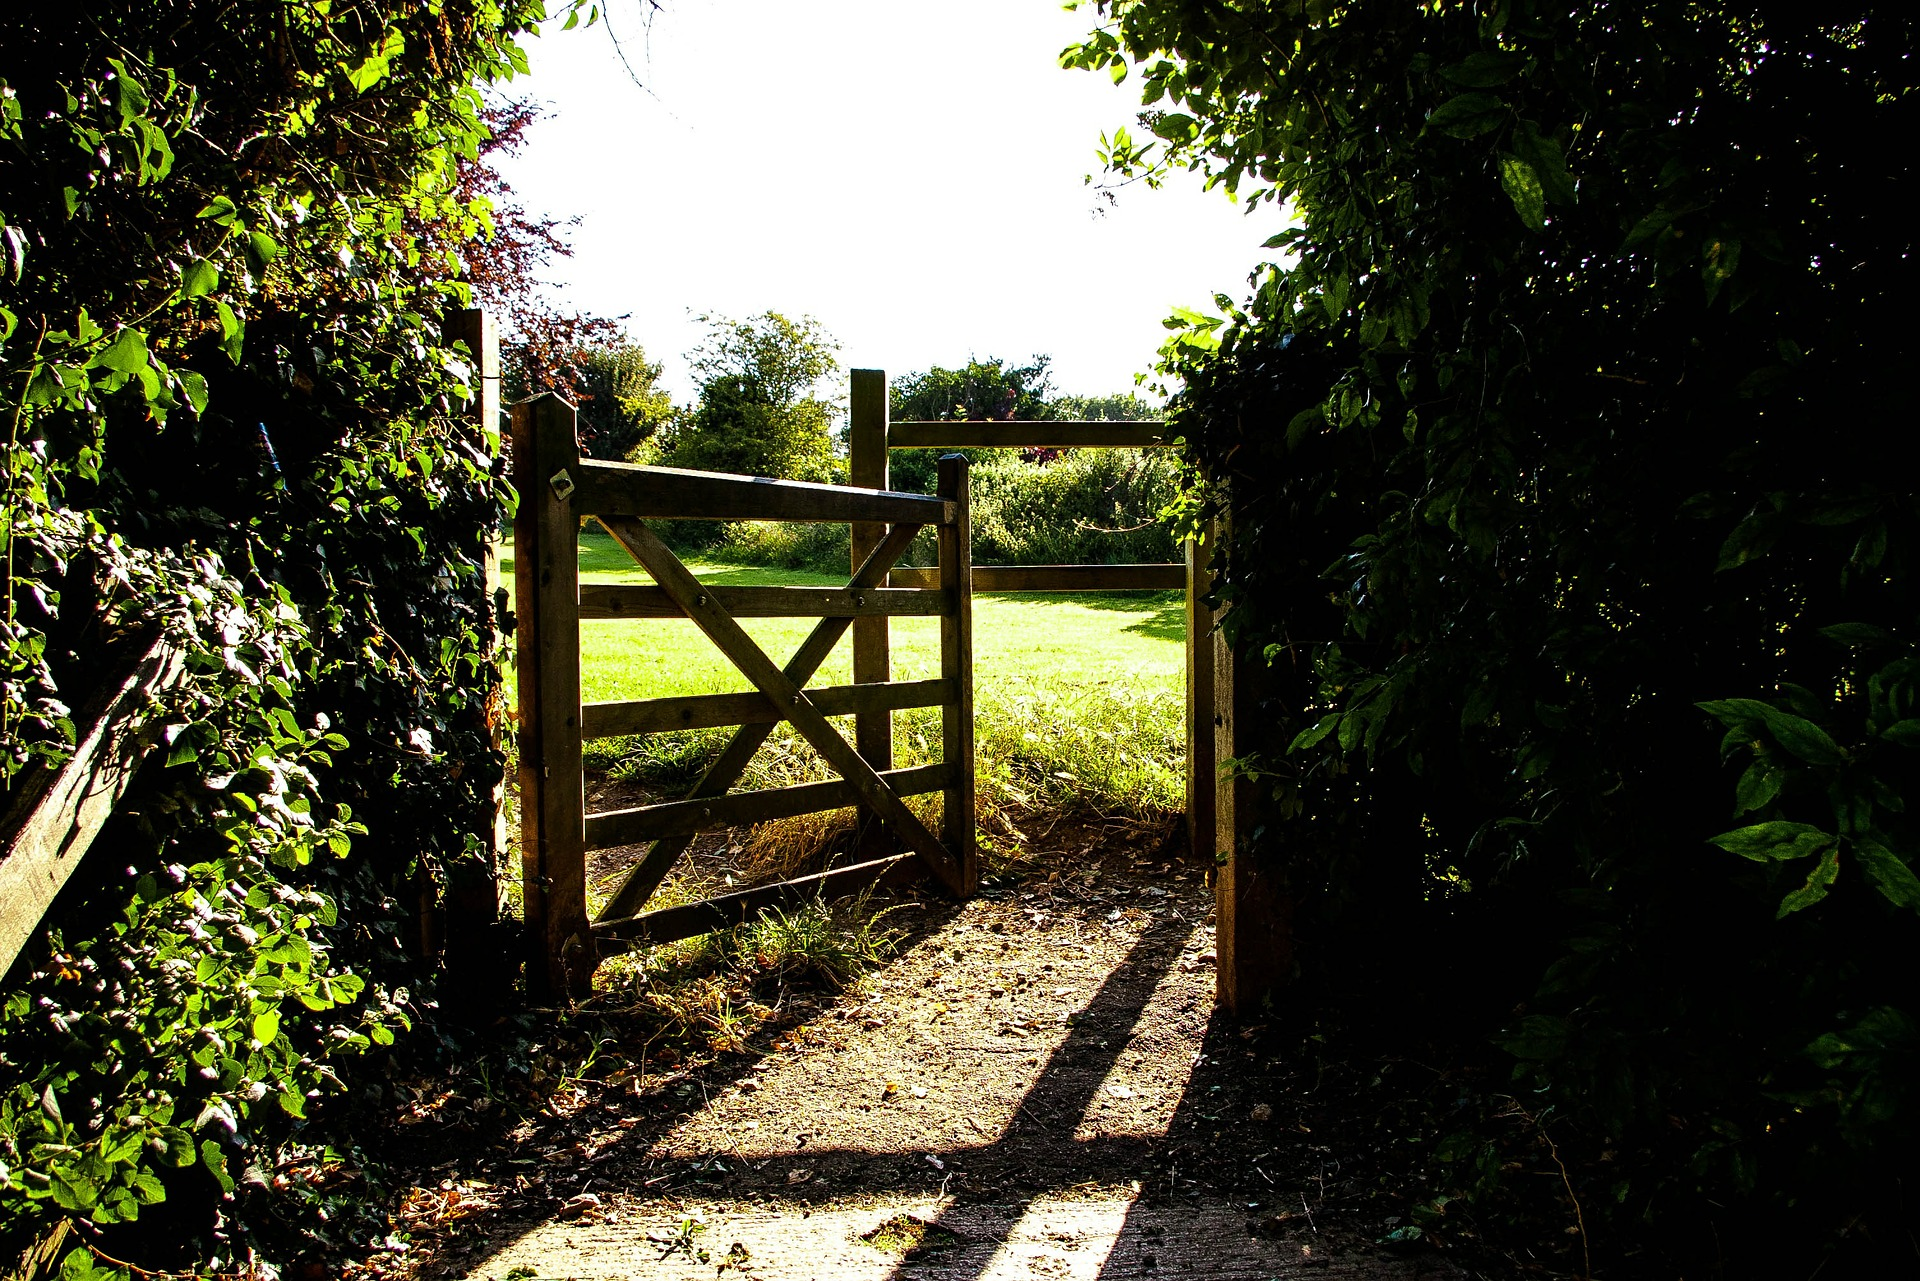 https://pixabay.com/en/gate-field-fence-grass-green-419890/